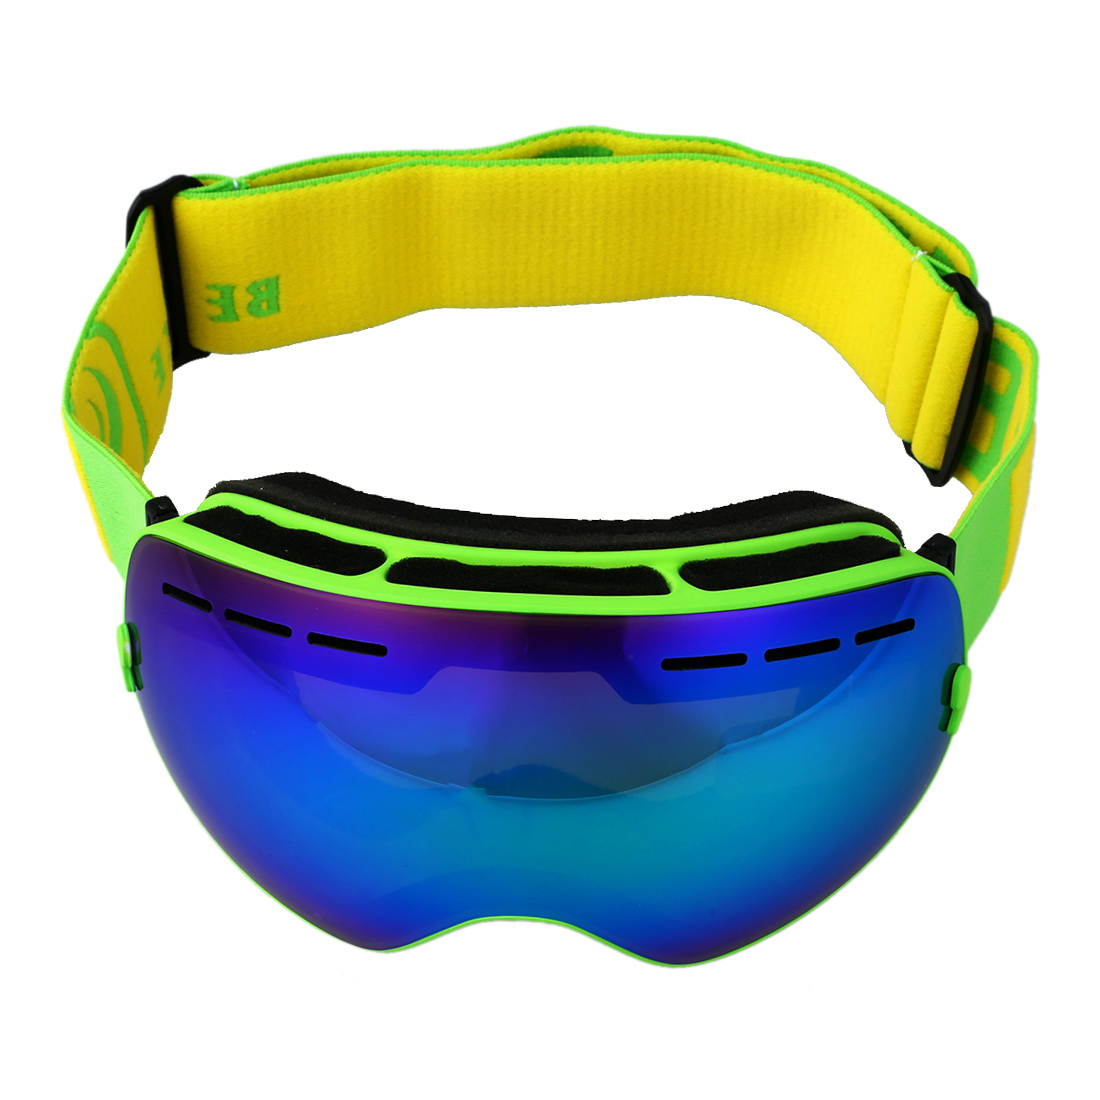 New Sale BENICE ski goggles double layer anti-fog eyes green frame